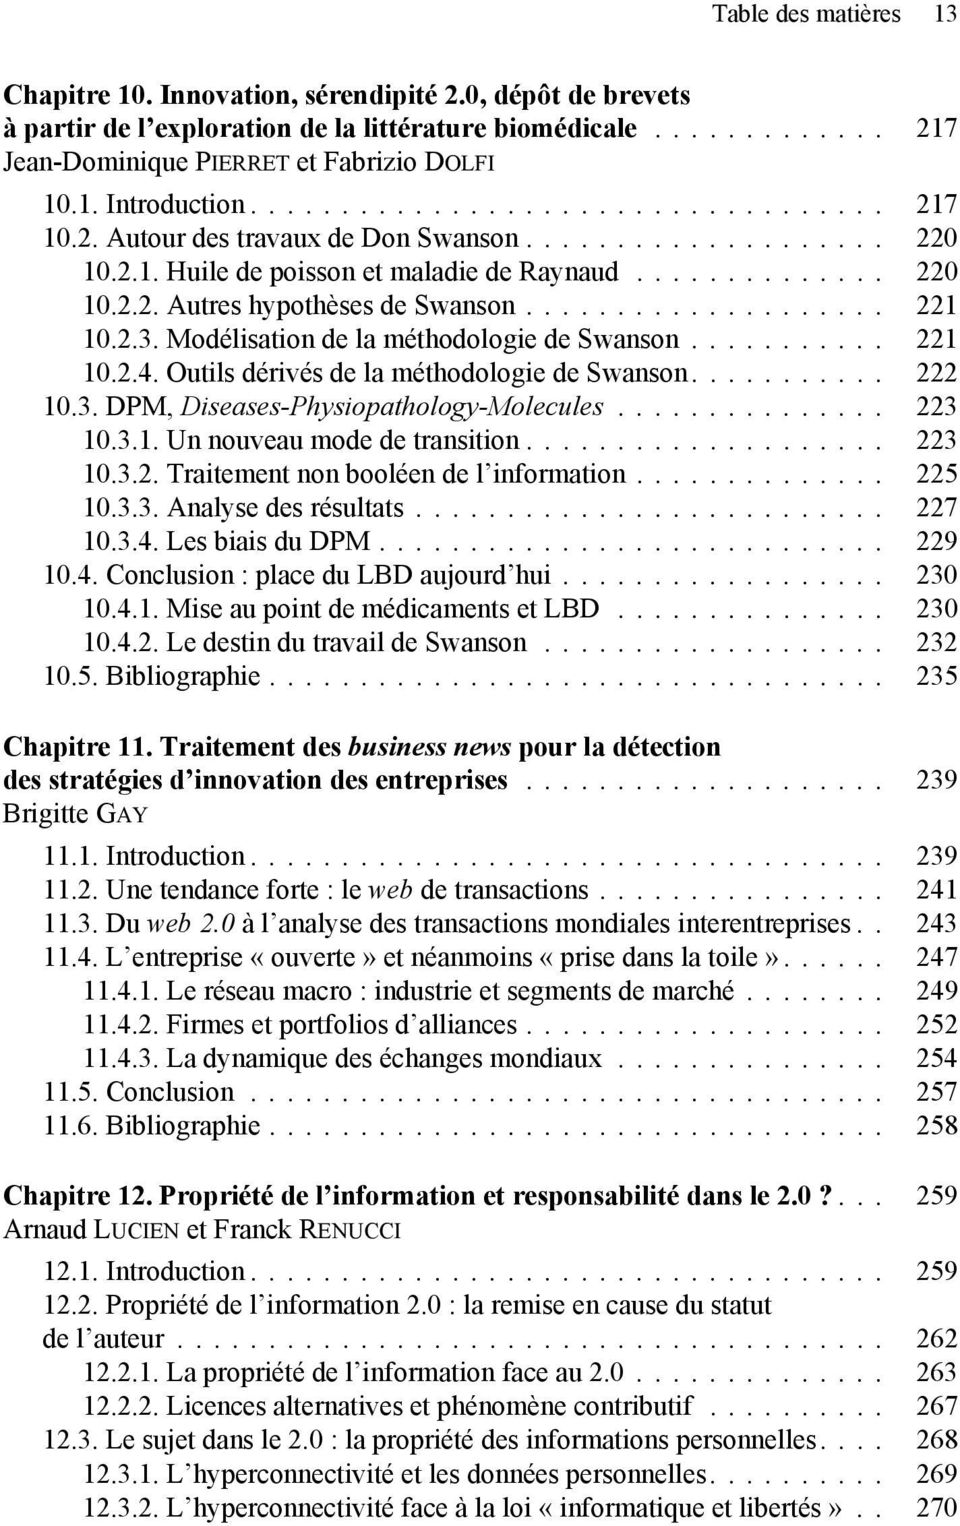 Modélisation de la méthodologie de Swanson... 221 10.2.4. Outils dérivés de la méthodologie de Swanson... 222 10.3. DPM, Diseases-Physiopathology-Molecules... 223 10.3.1. Un nouveau mode de transition.